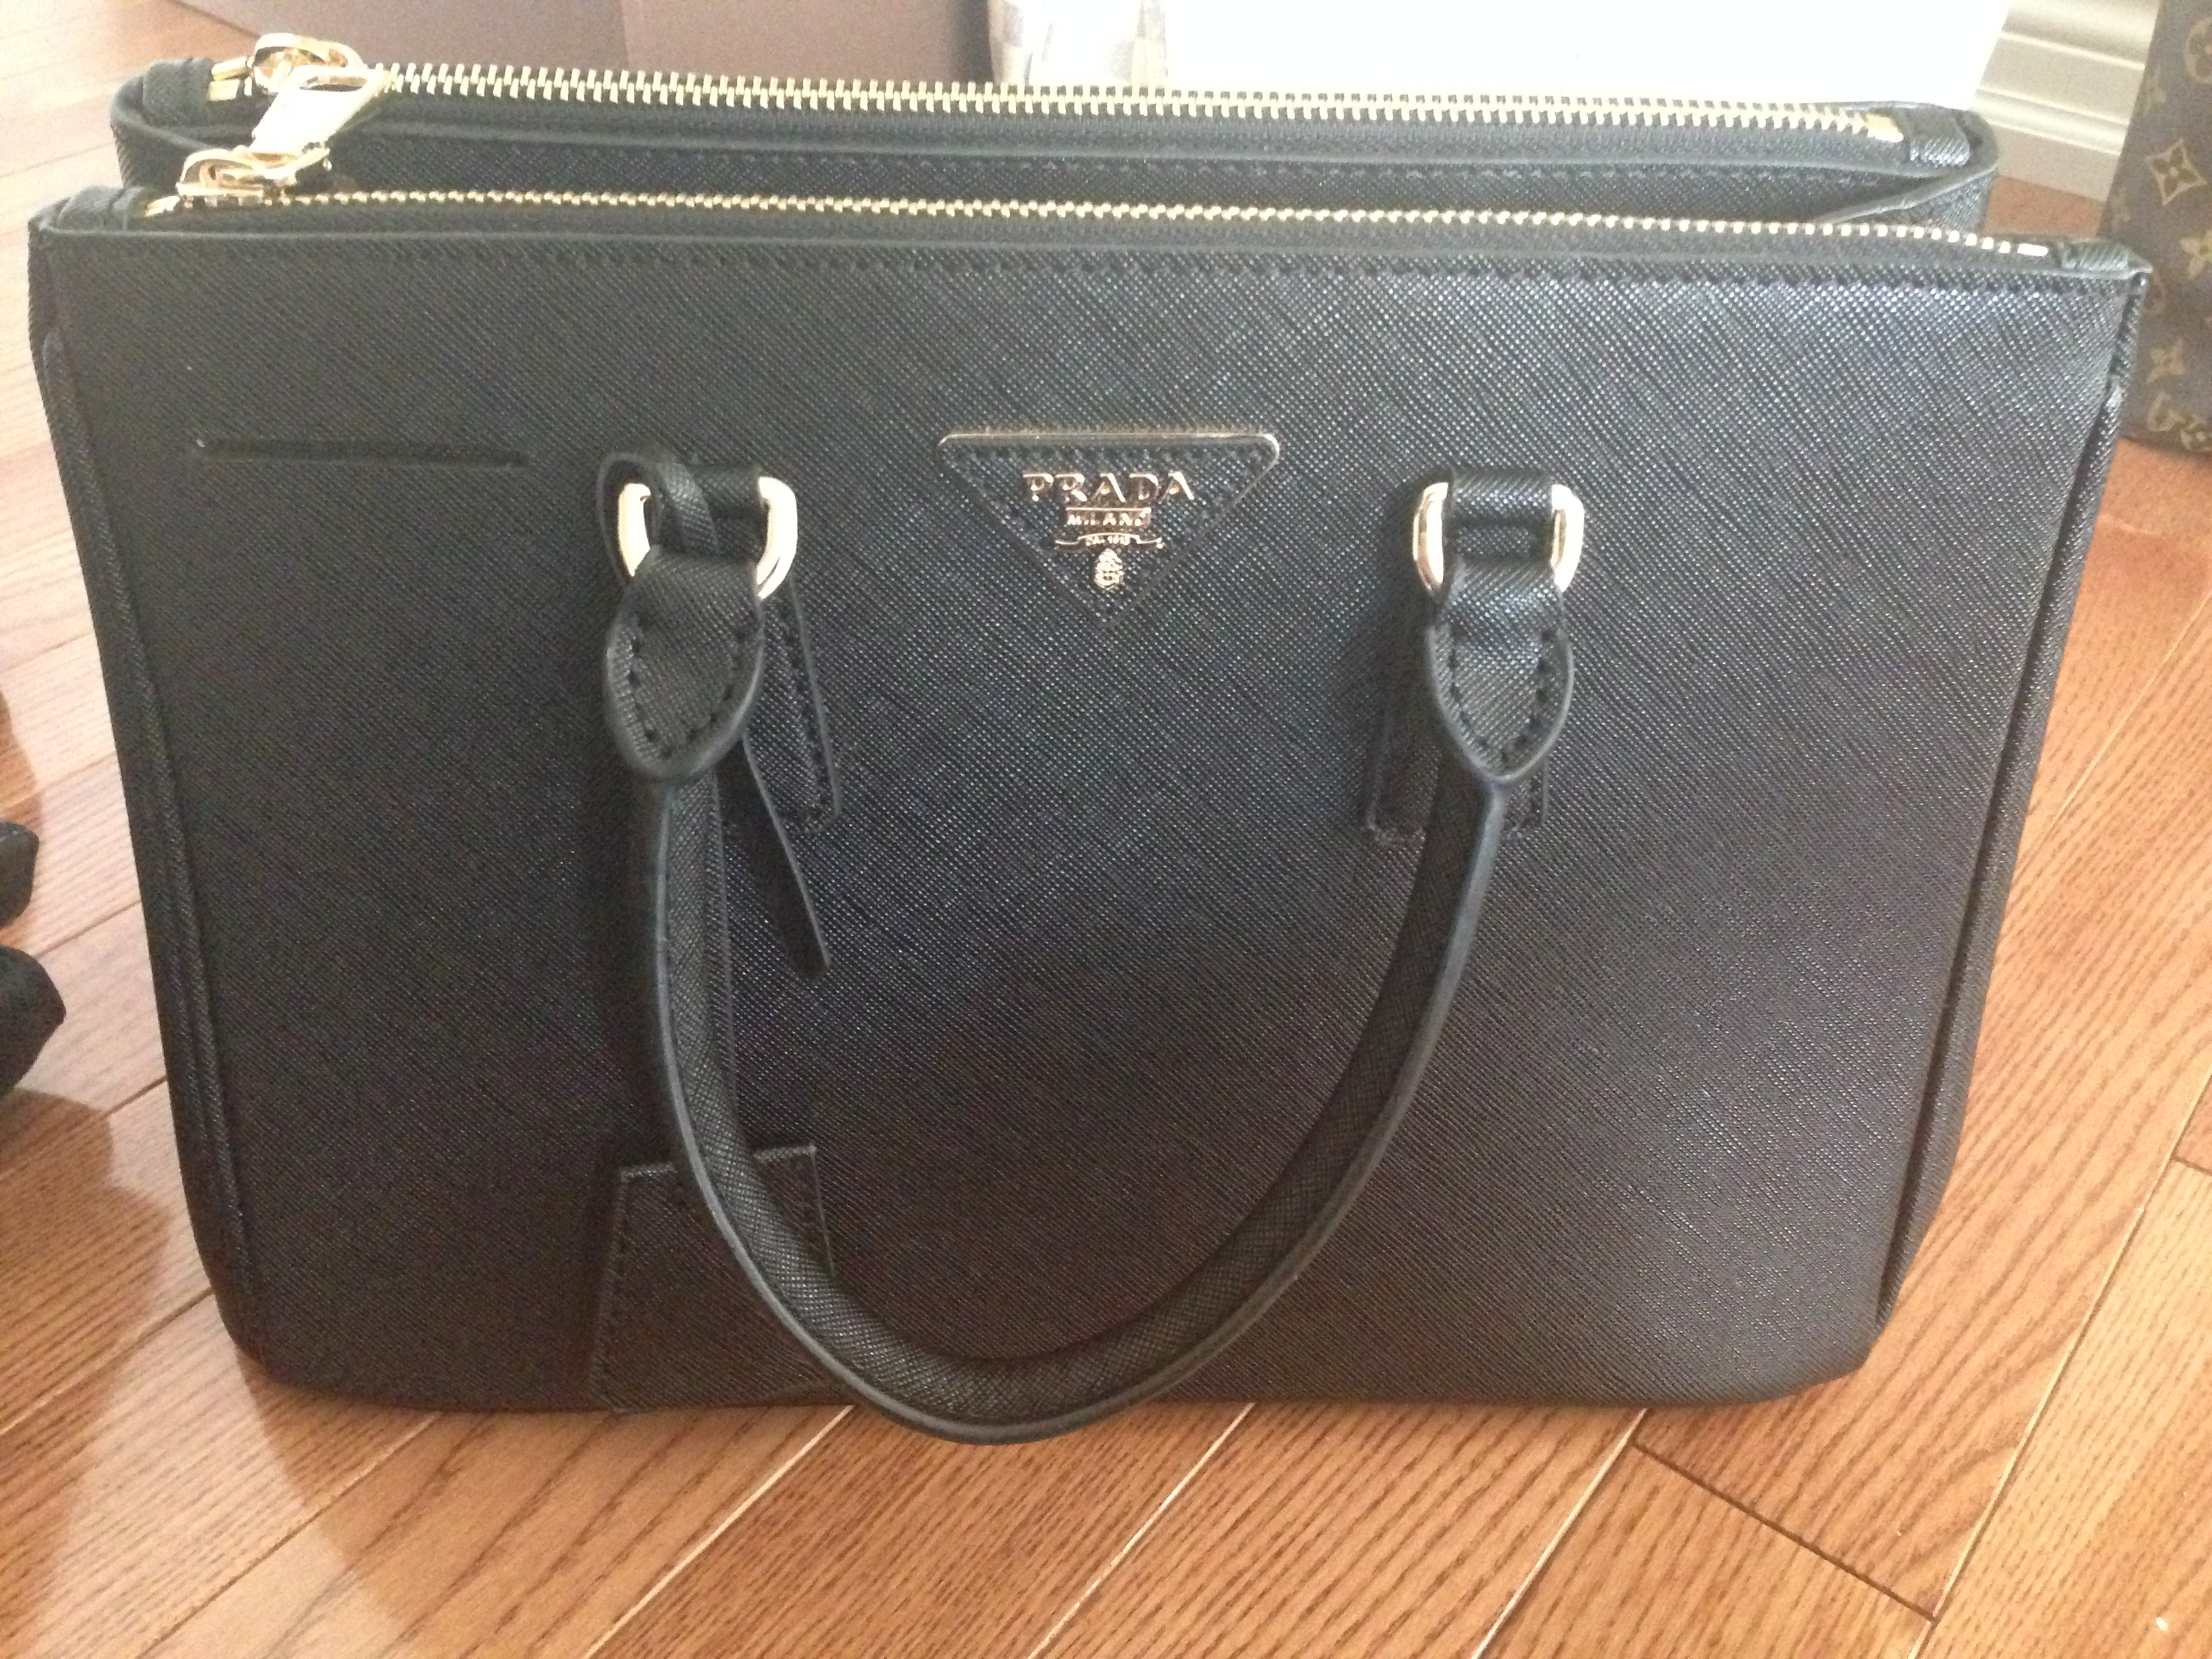 replica chloe marcie bag - prada bags fake, prada purse replica